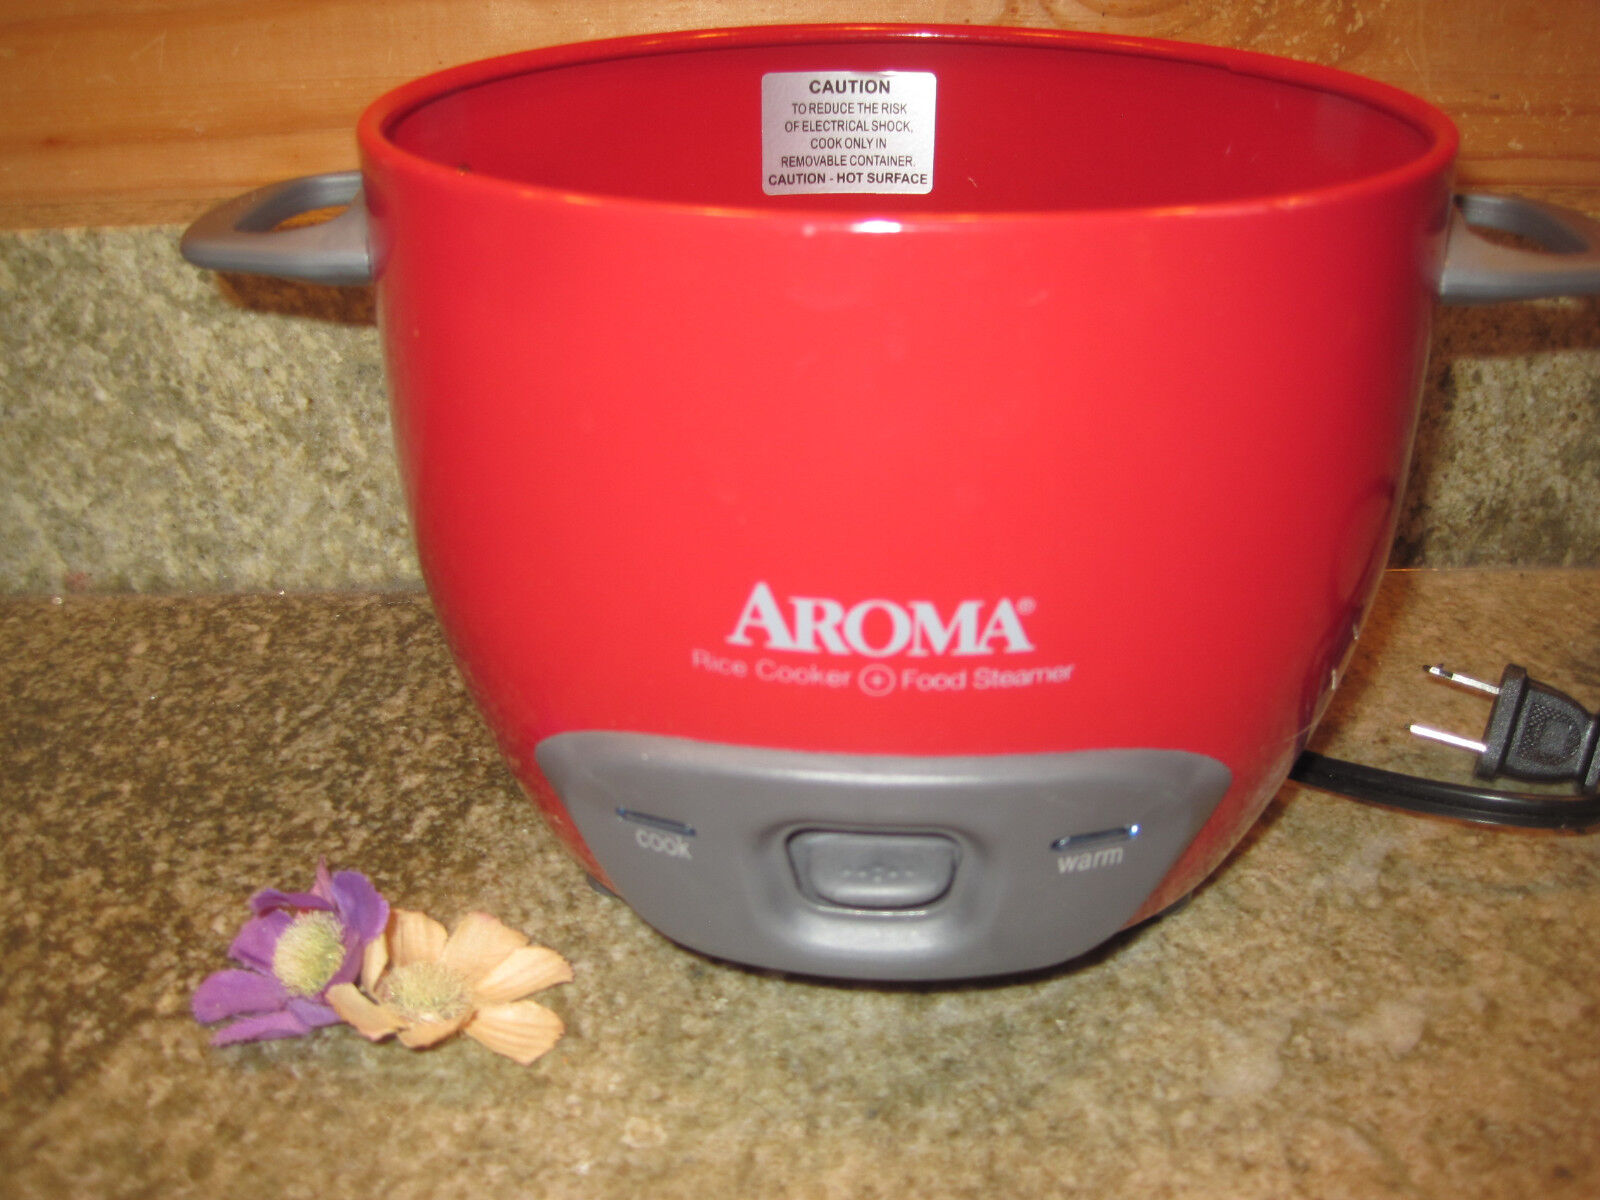 RED Aroma Rice Cooker and Food Steamer 2-6 Cups ARC-743-1NG